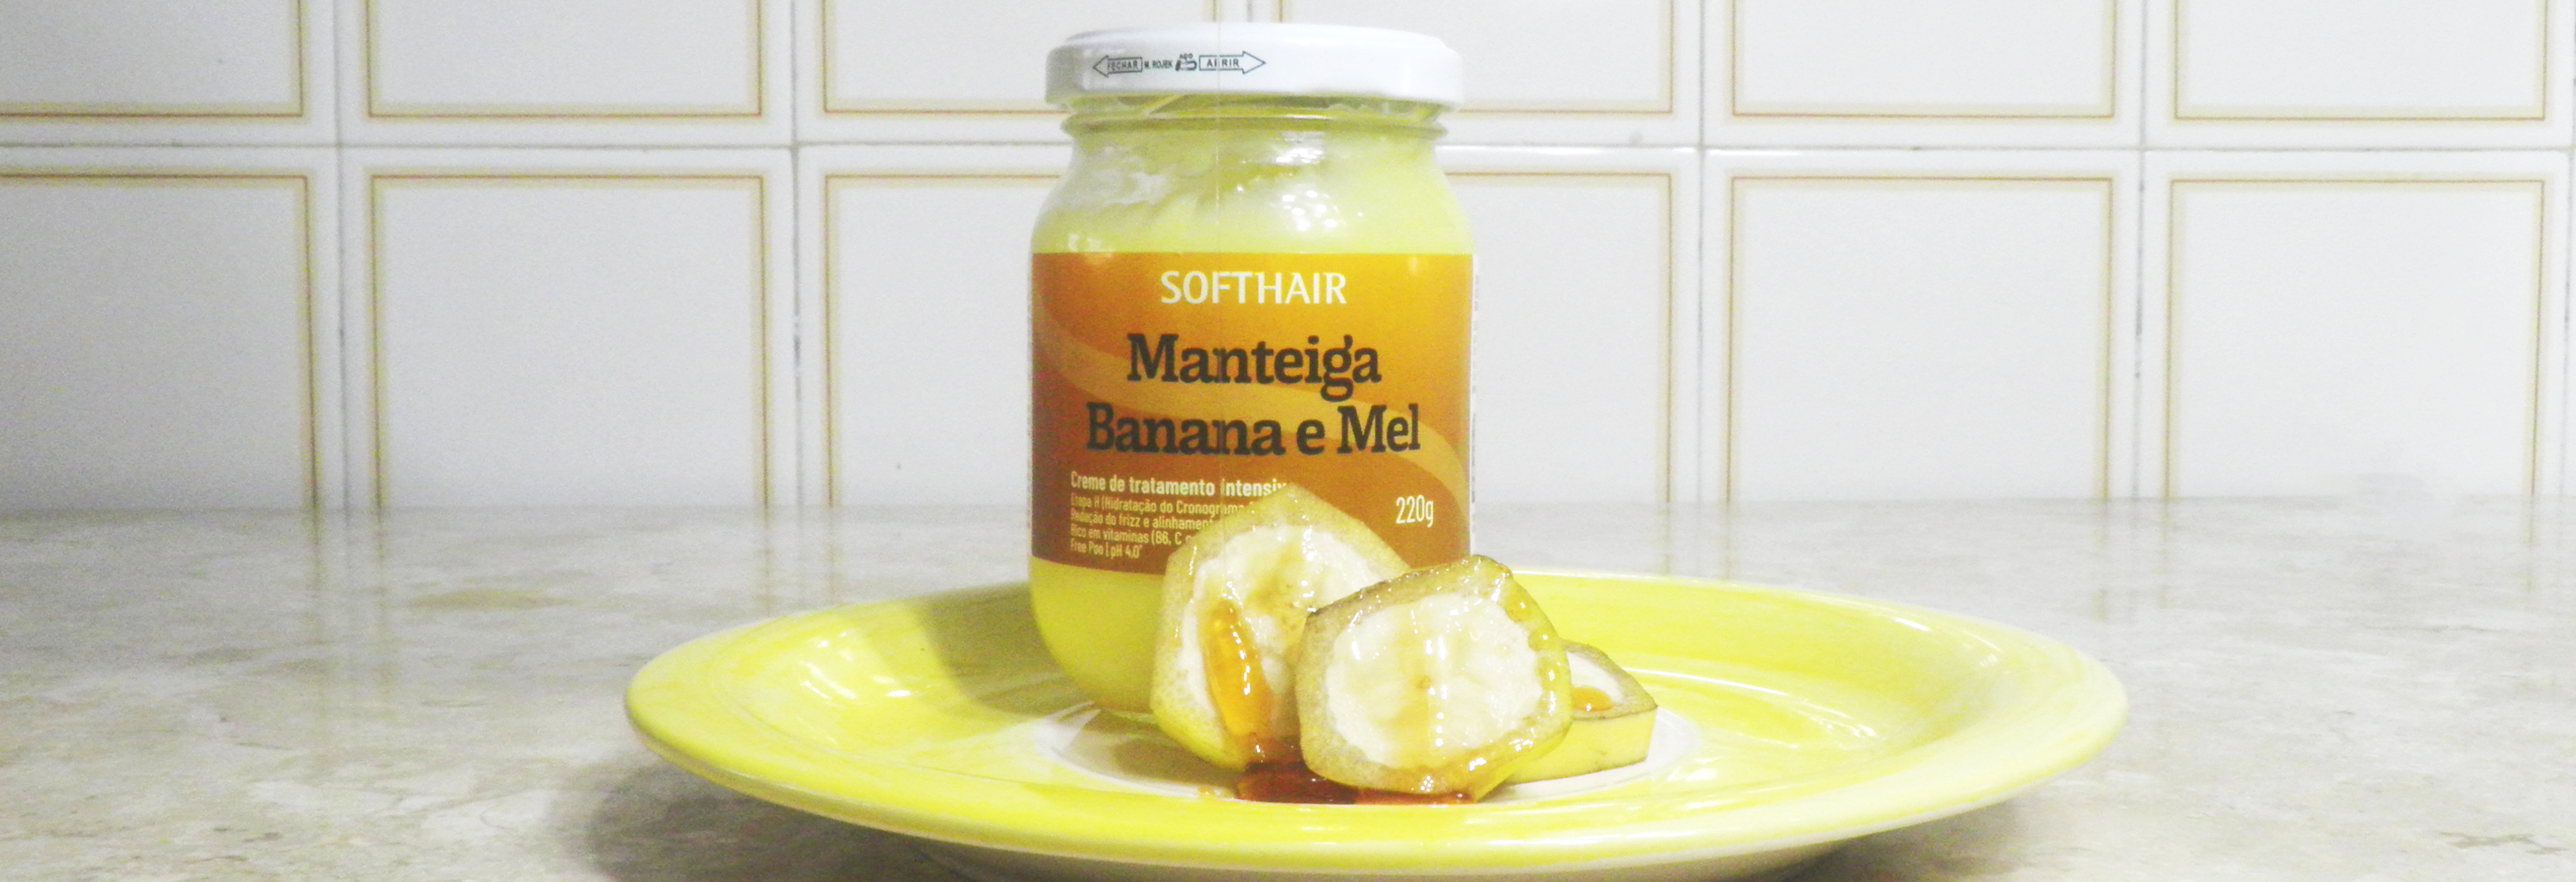 Resenha Manteiga Soft Hair Banana e Mel